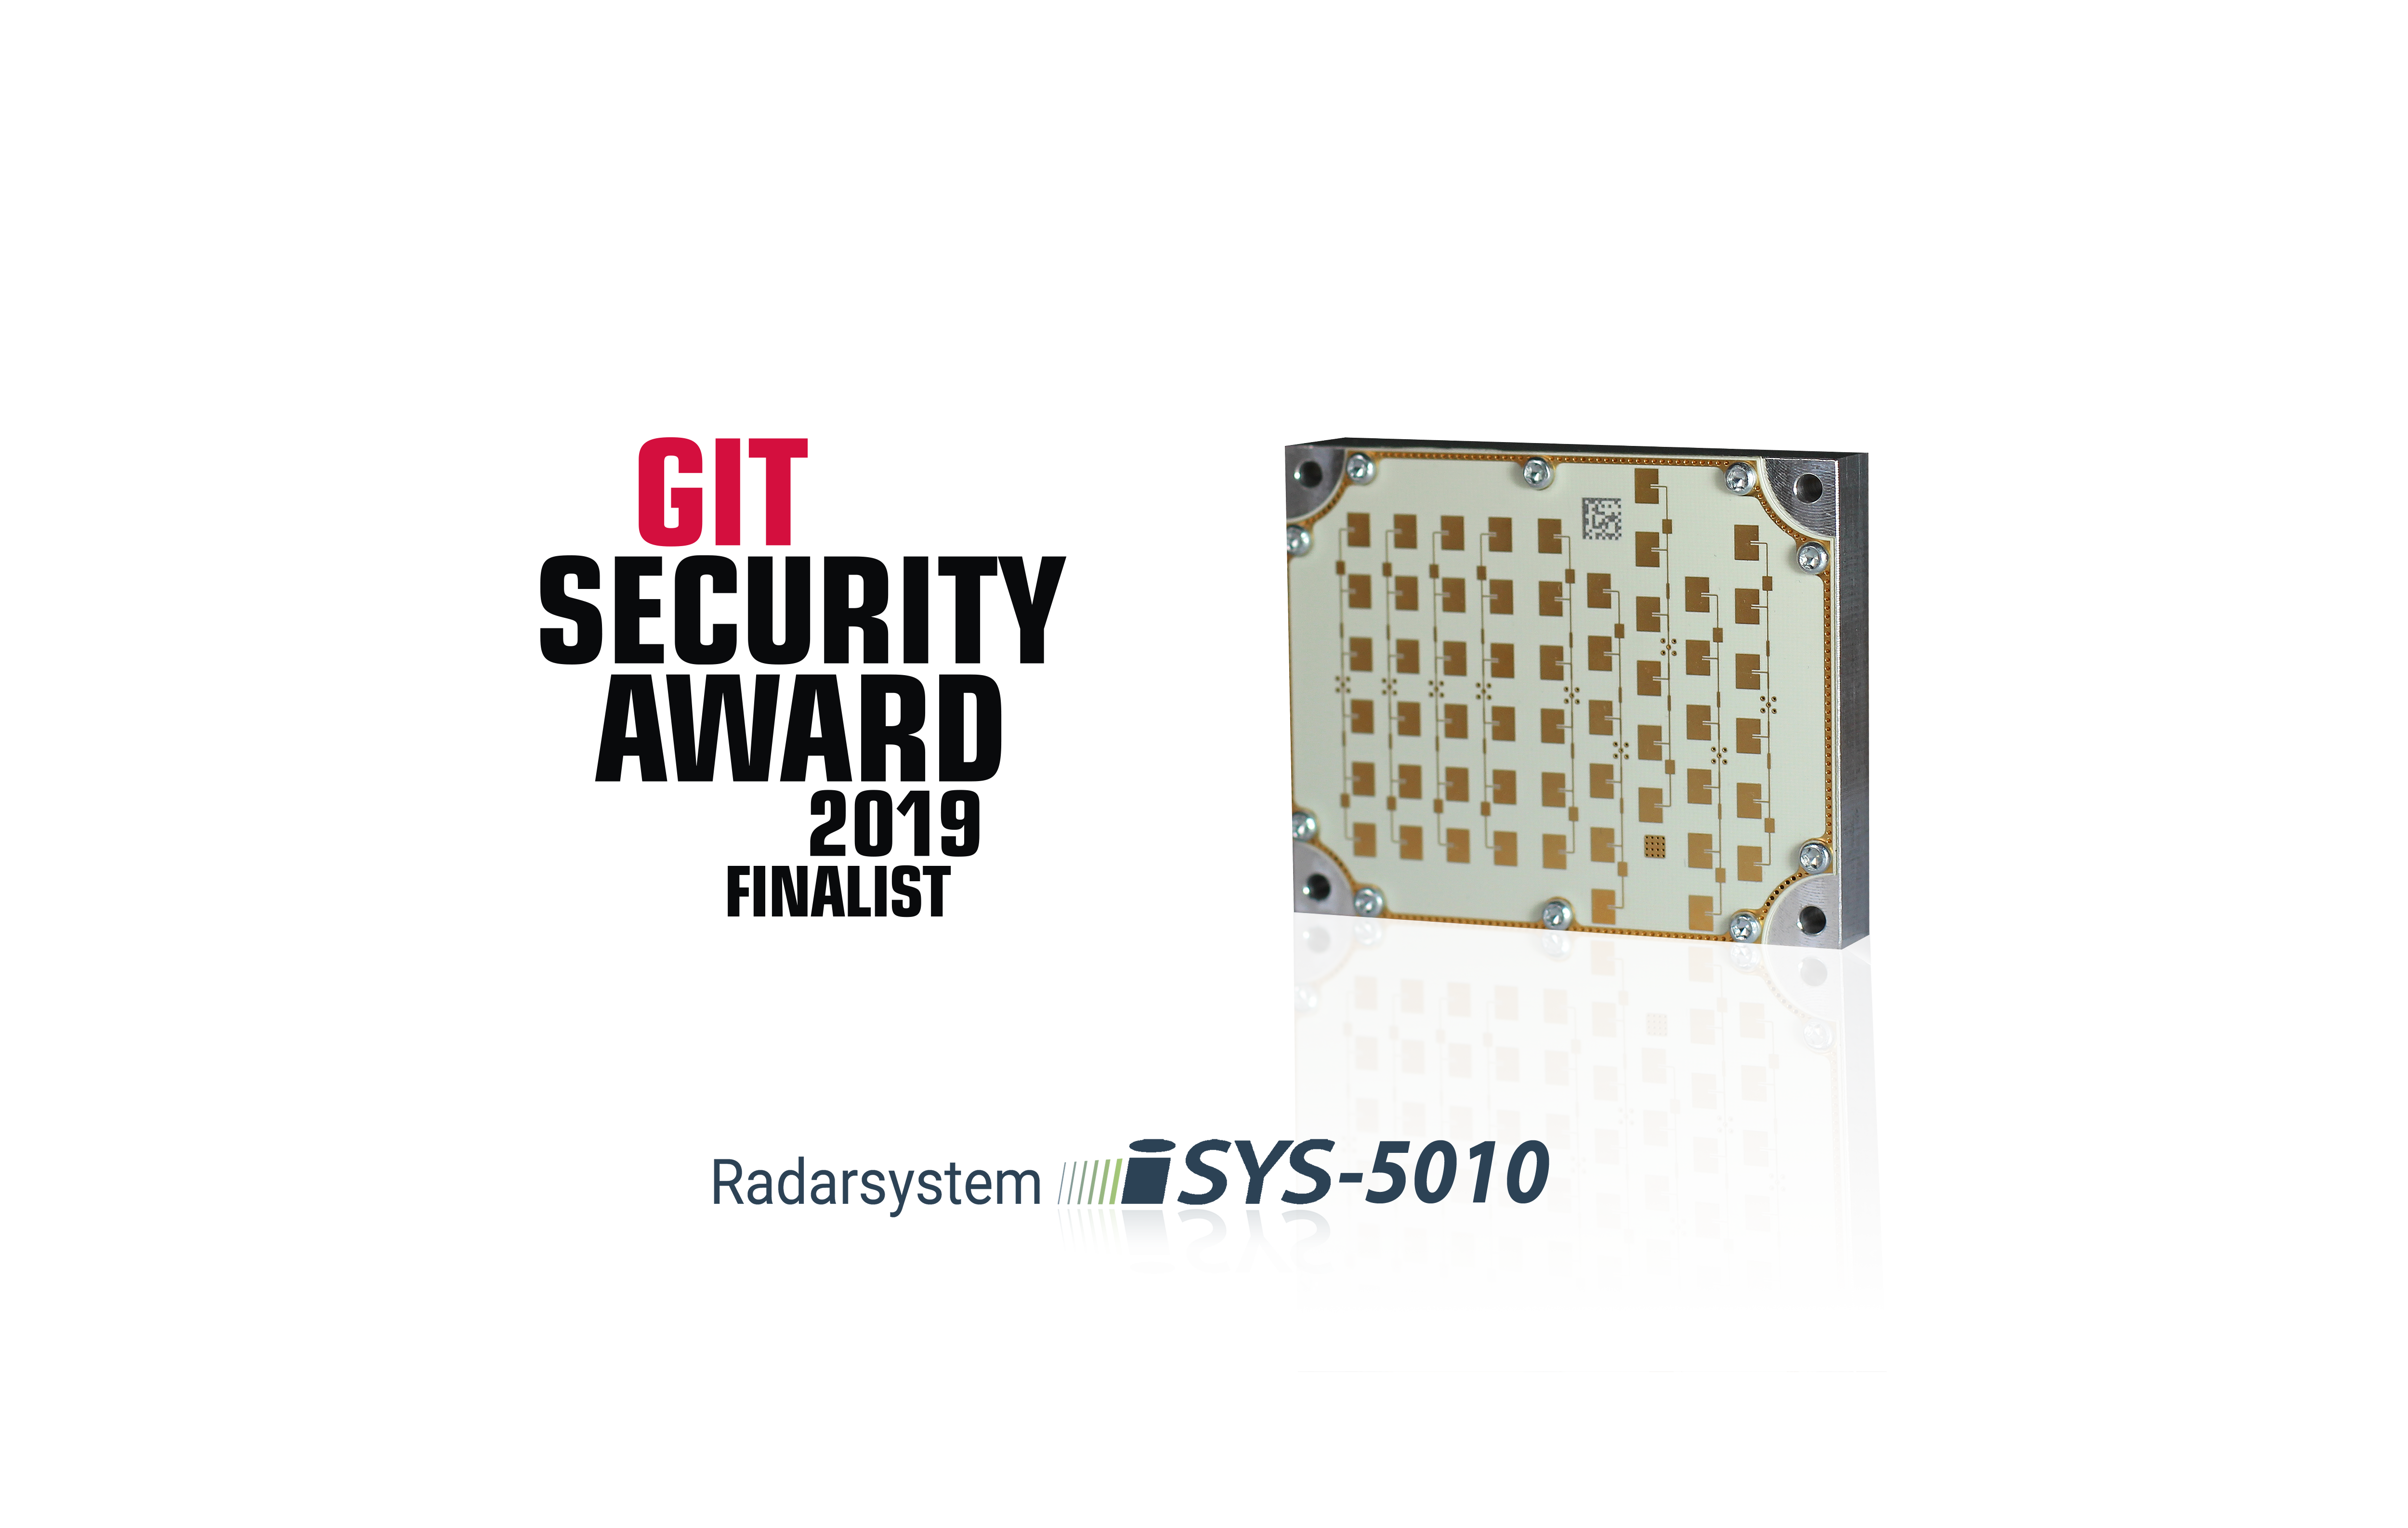 The radar system iSYS-5010 is nominated as Finalist at the GIT SECURITY Award.